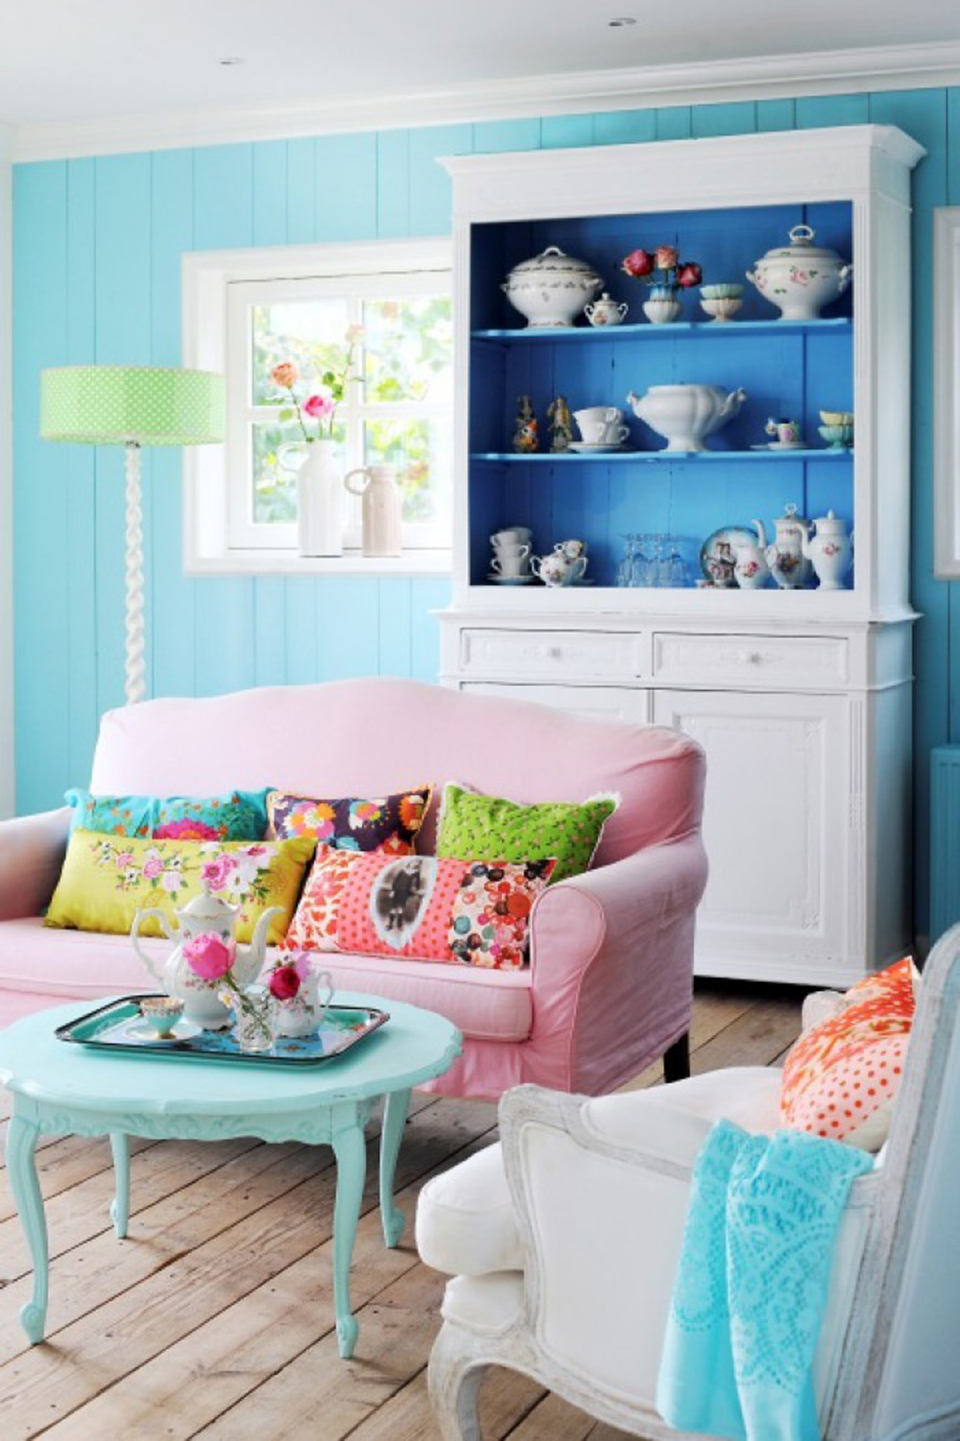 50 Best Small Living Room Design Ideas for 2020 on Small Living Room Decor Ideas  id=66863